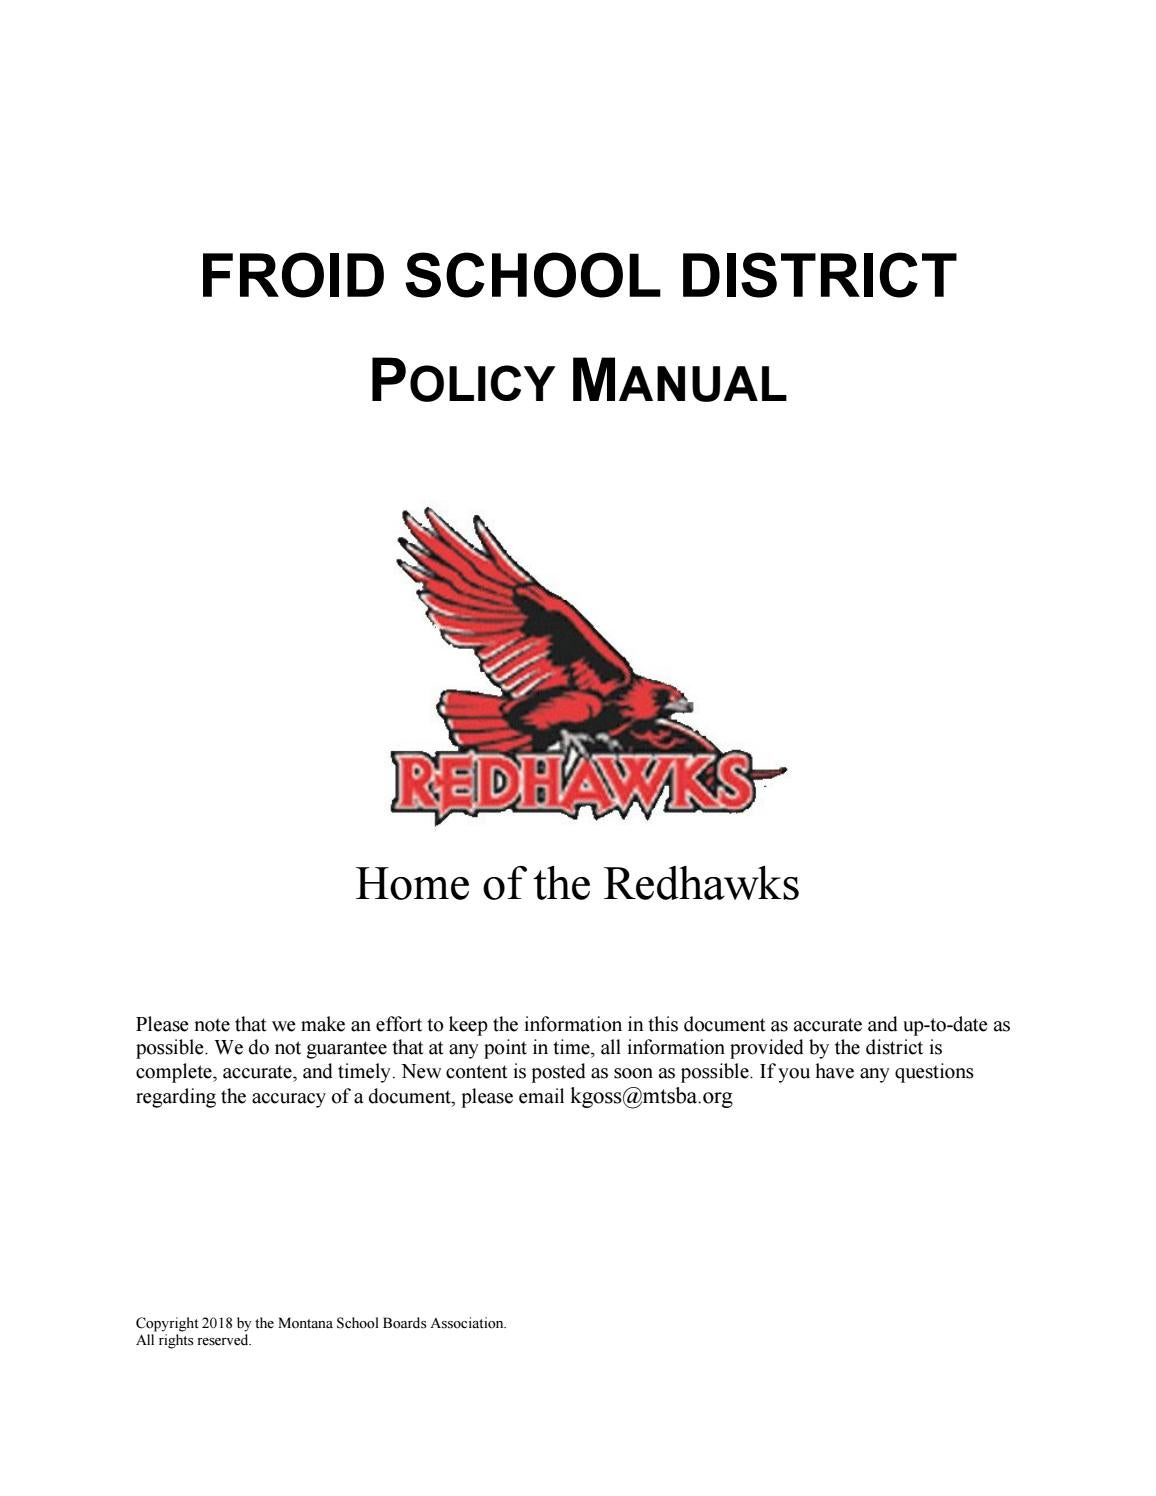 Froid School District Policy Manual by Montana School Boards